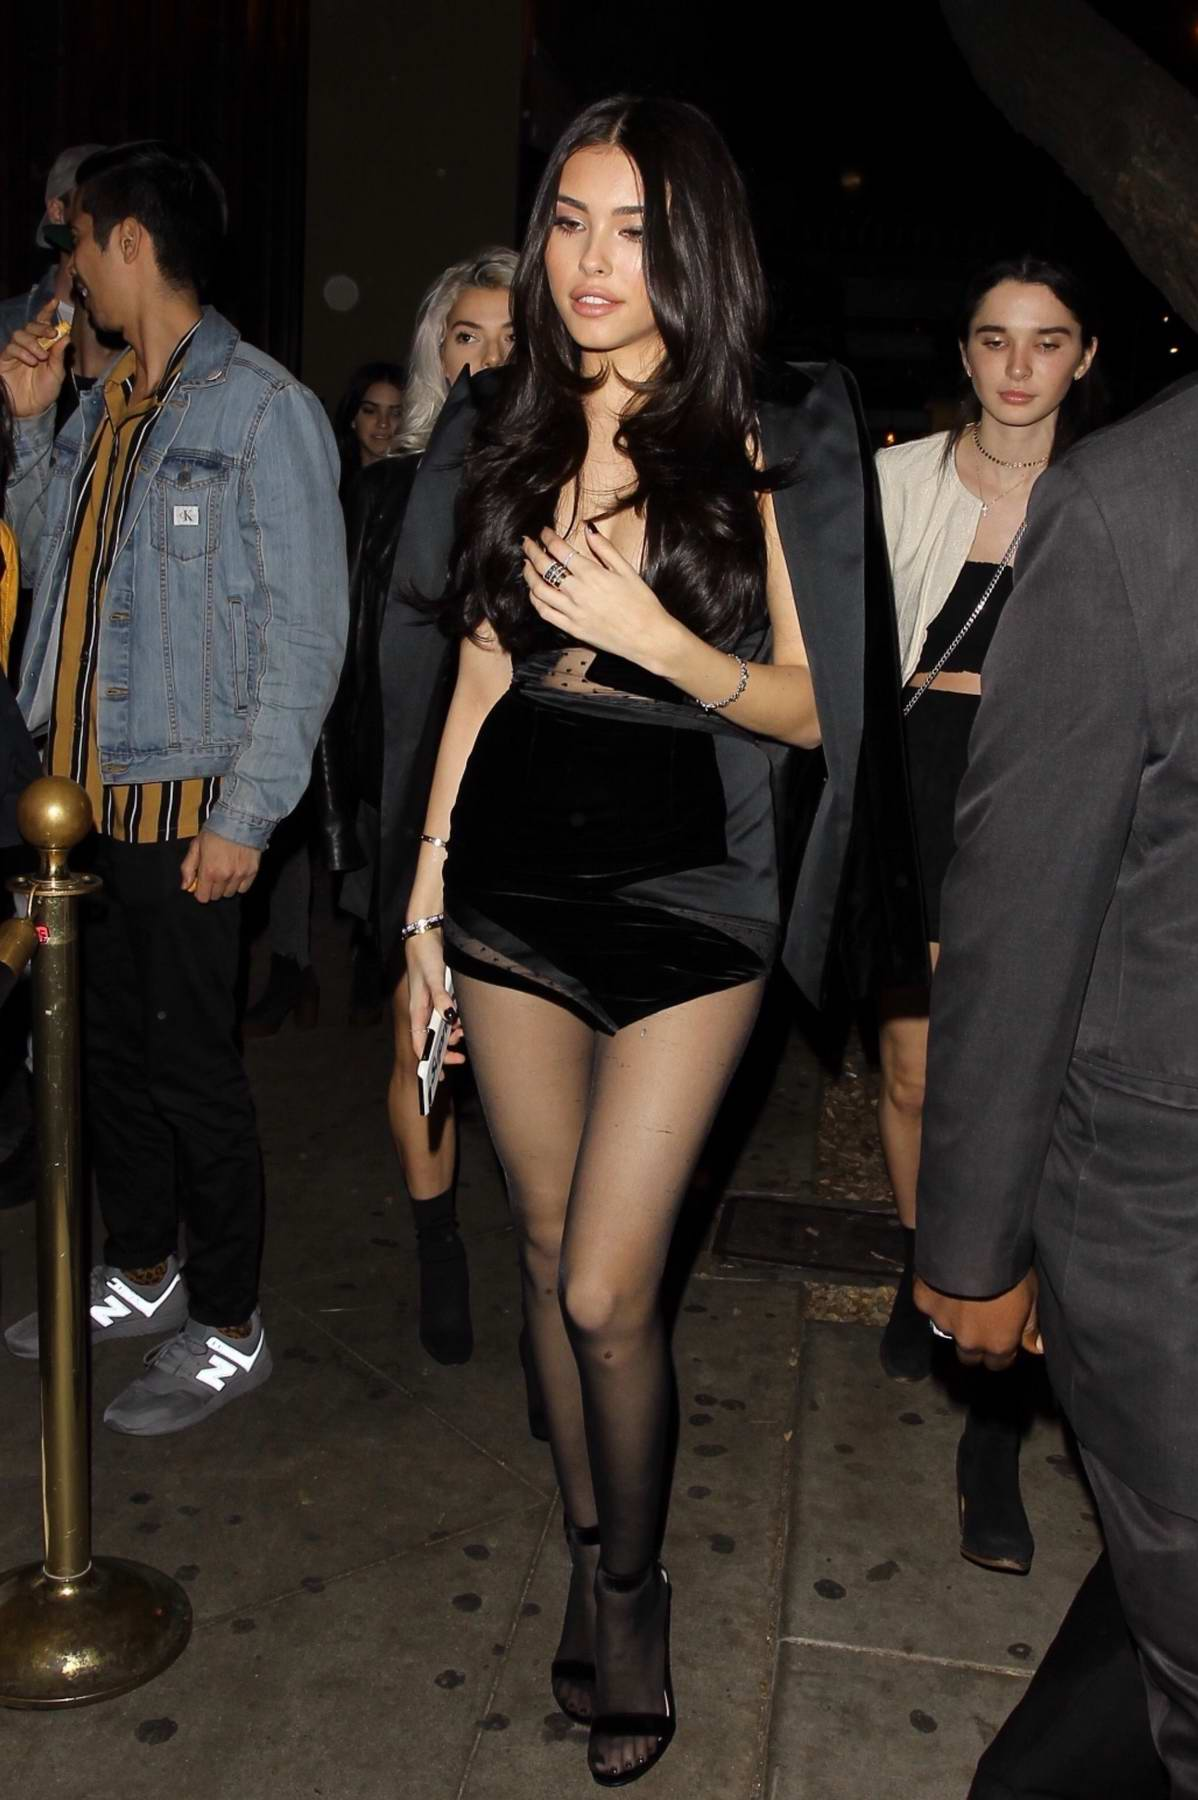 Madison Beer arrives at her listening party at the Peppermint Club in West Hollywood, Los Angeles